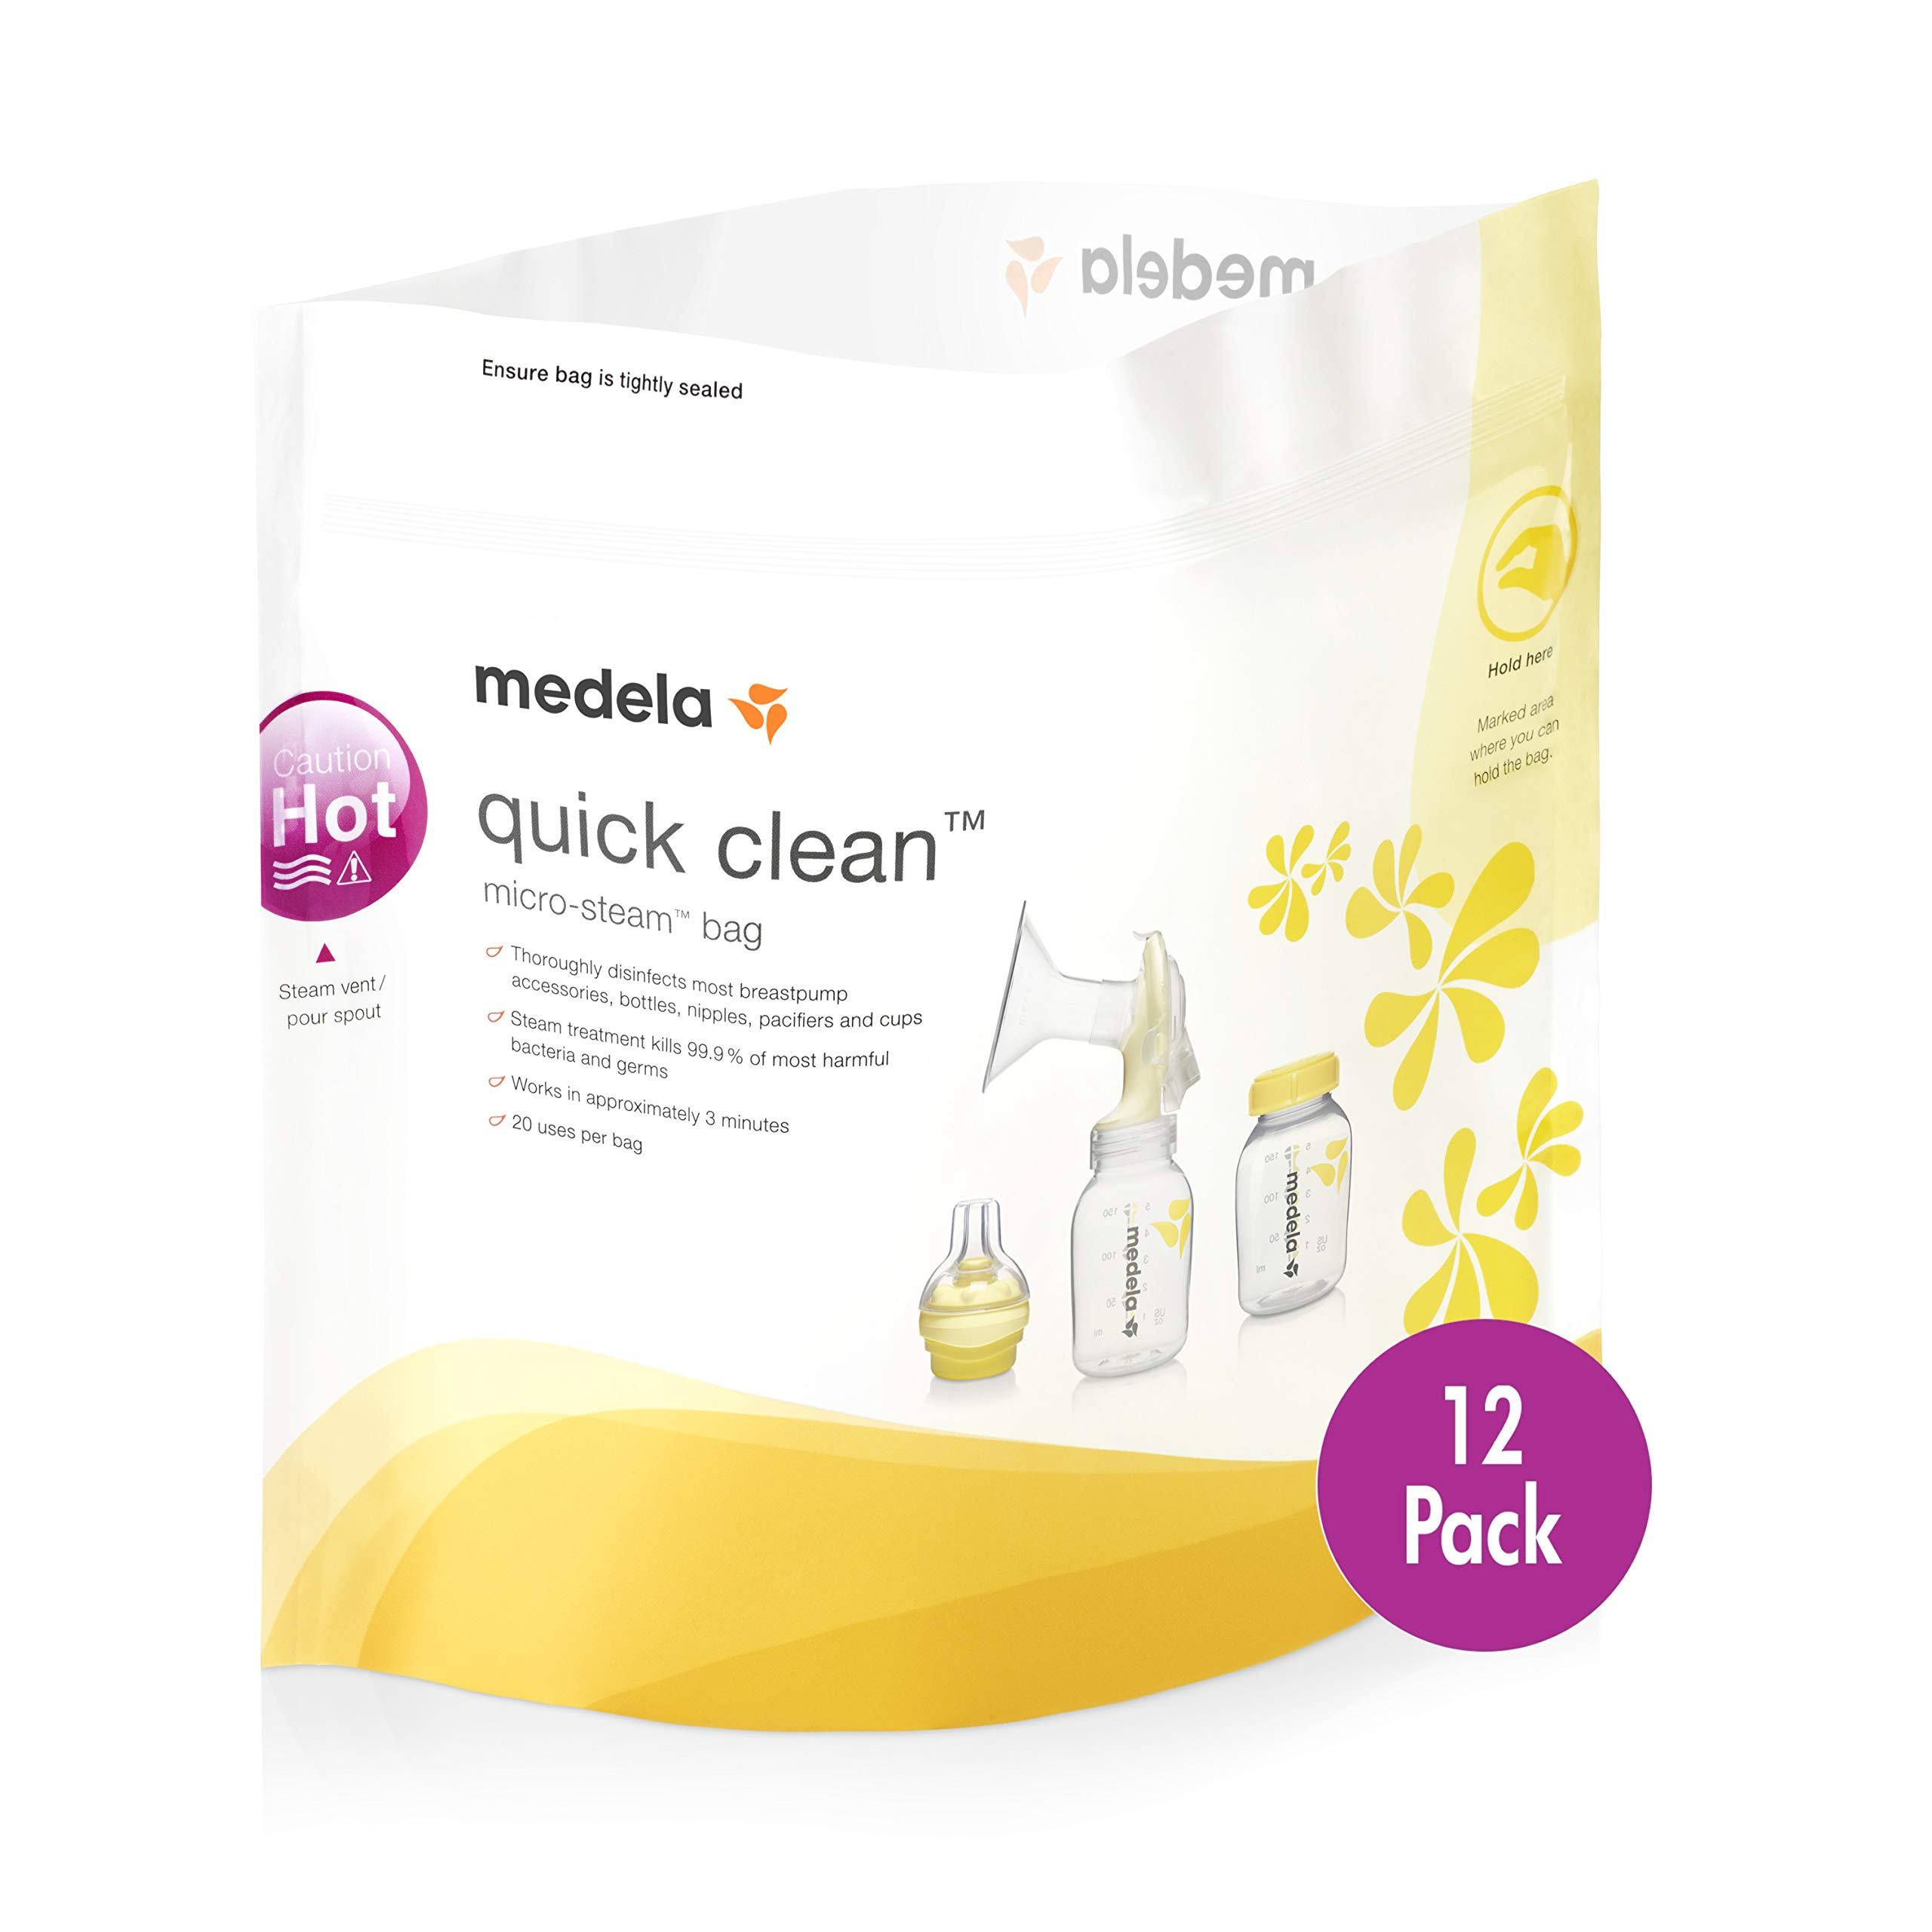 Medela Quick Clean Micro-Steam Bags, 12Count Sterilizing Bags for Bottles & Breast Pump Parts, Eliminates 99.9% of Common Bacteria & Germs, Disinfects Most Breastpump Accessories by Medela